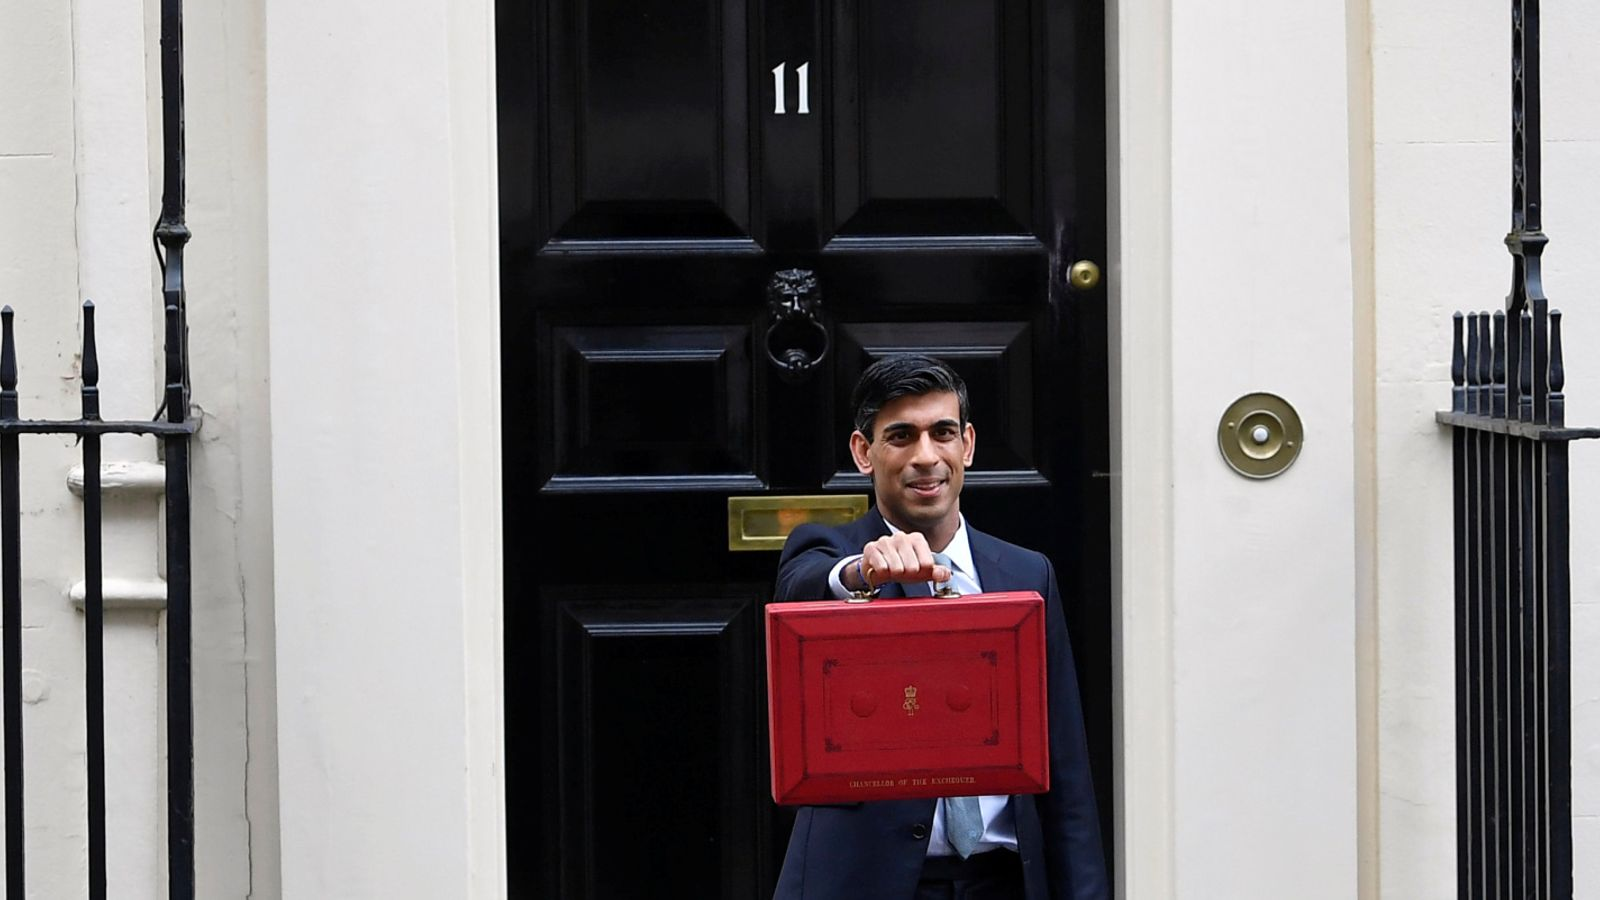 Budget 2021: Rishi Sunak 'fighting in the fog' as he sets the tenor of his chancellorship